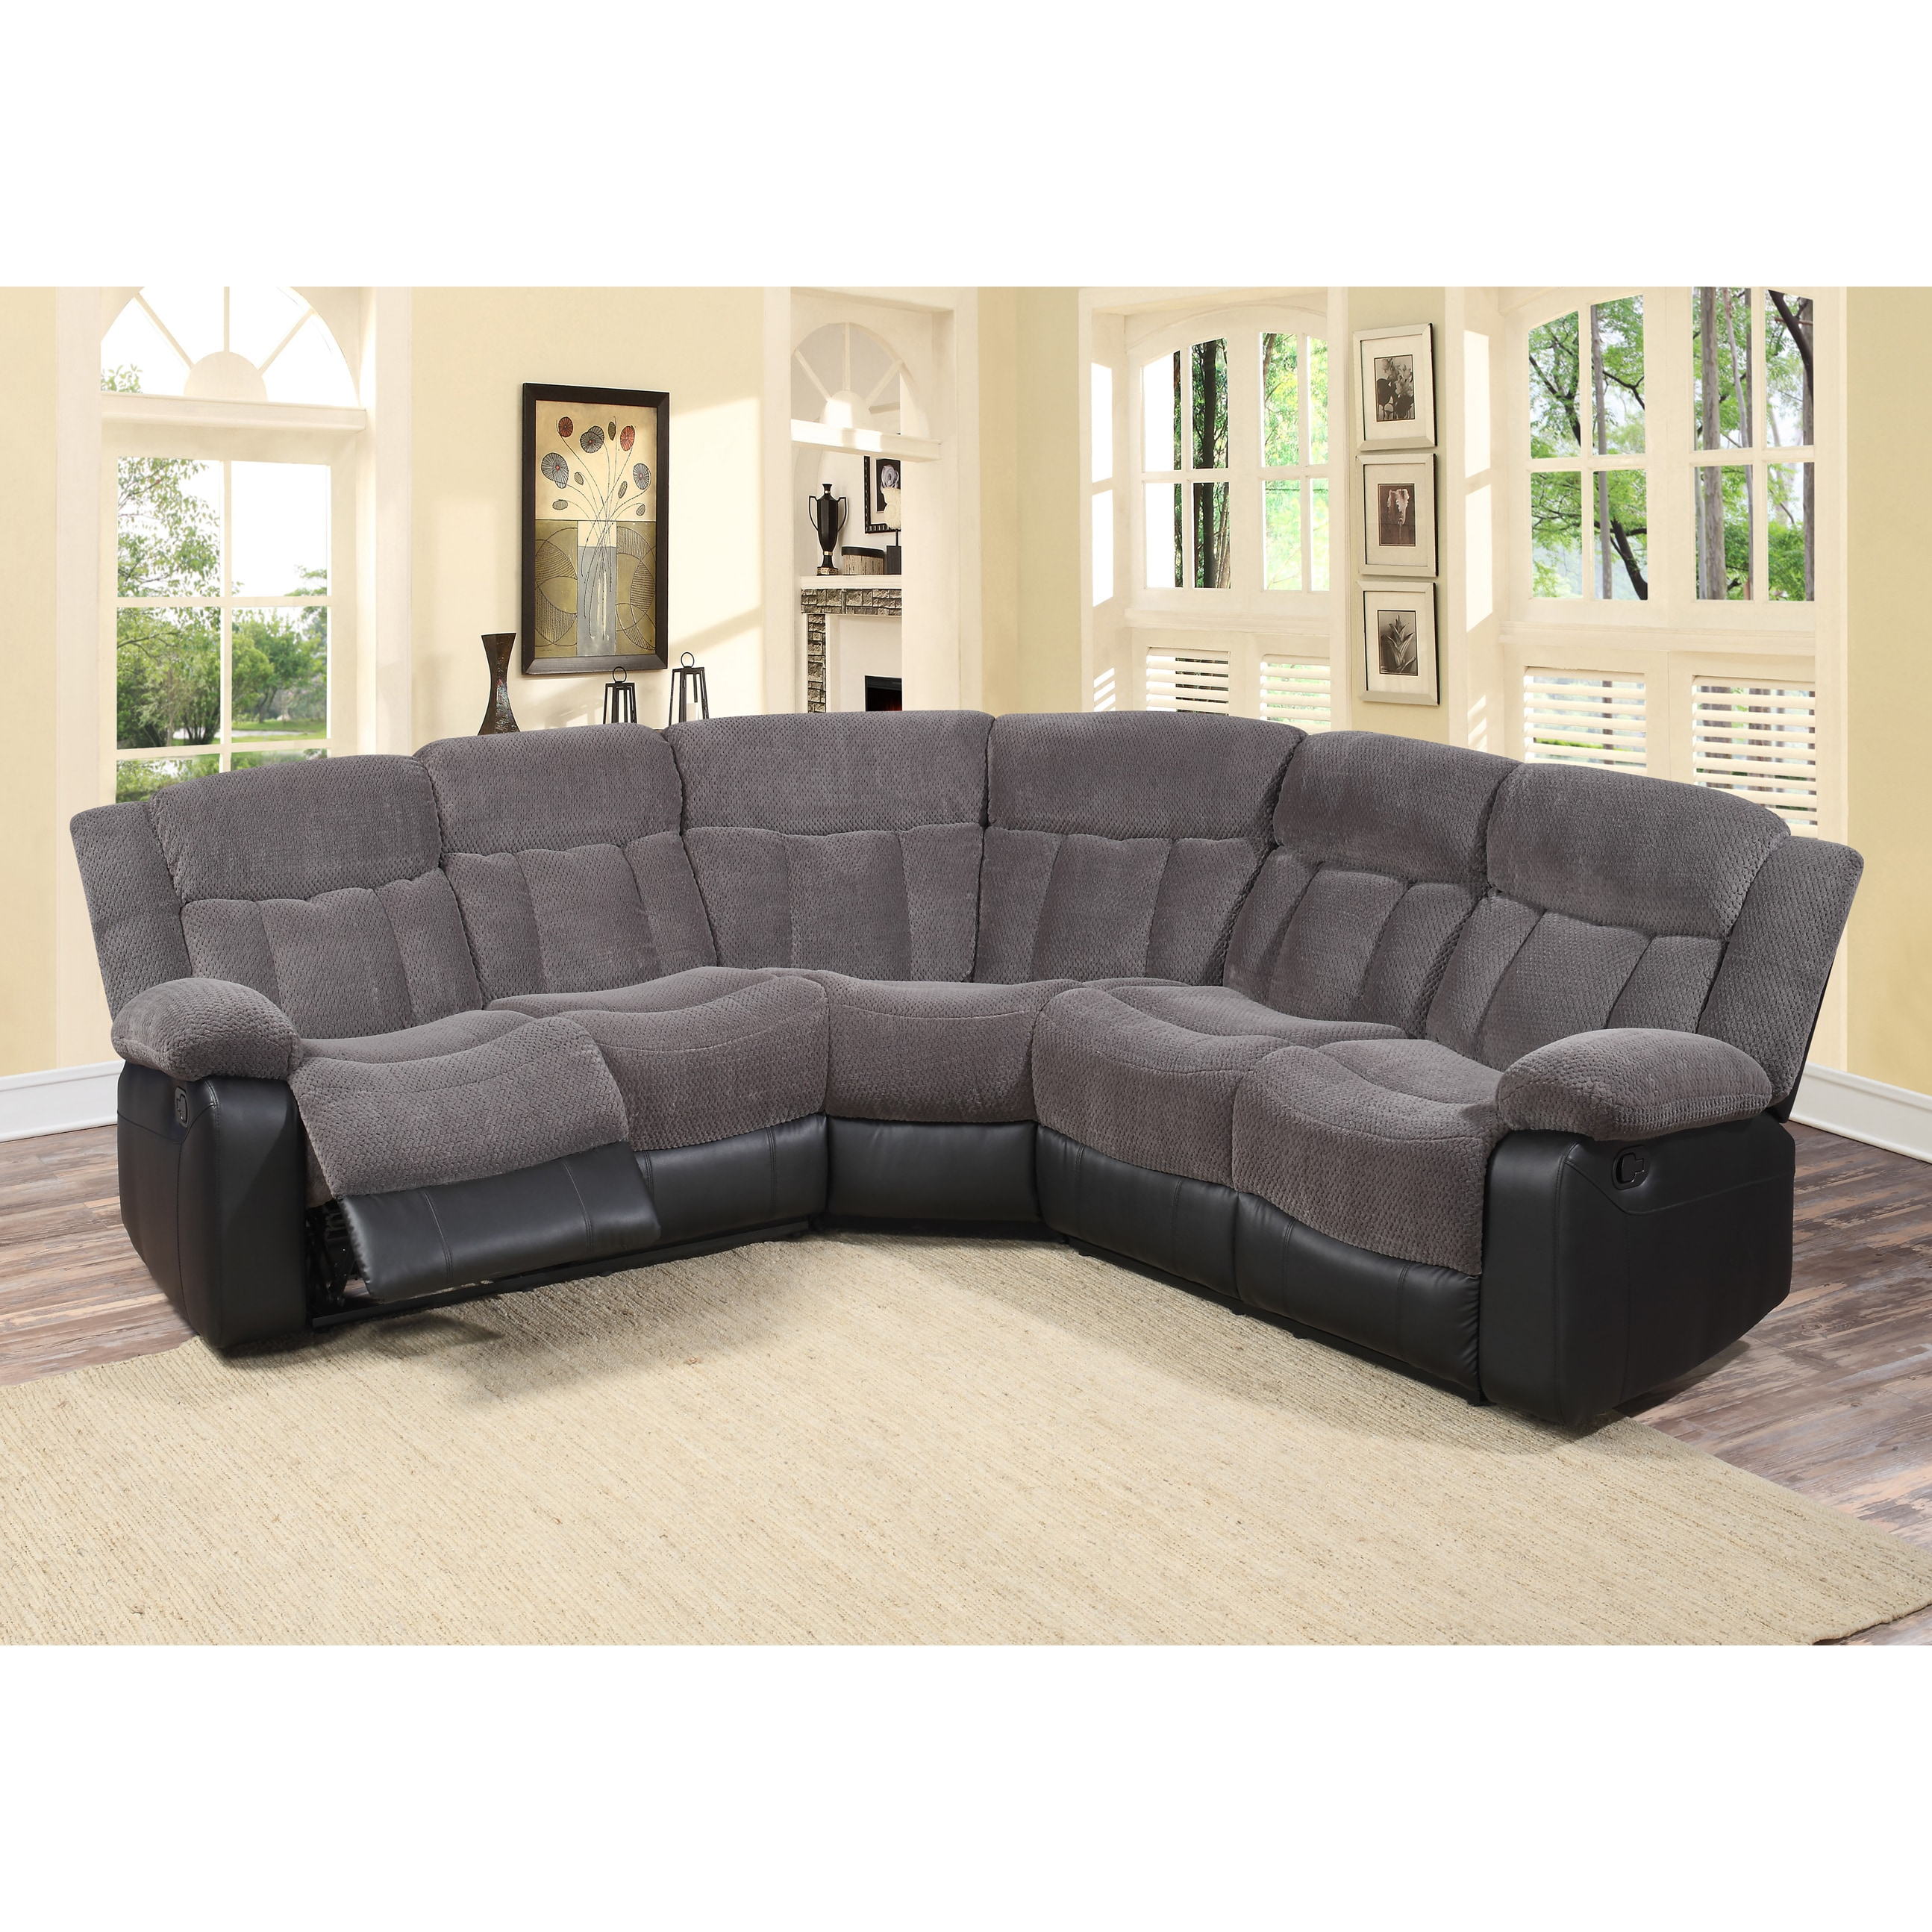 tonnie 3 piece grey fabric and faux leather reclining sectional living room sofa